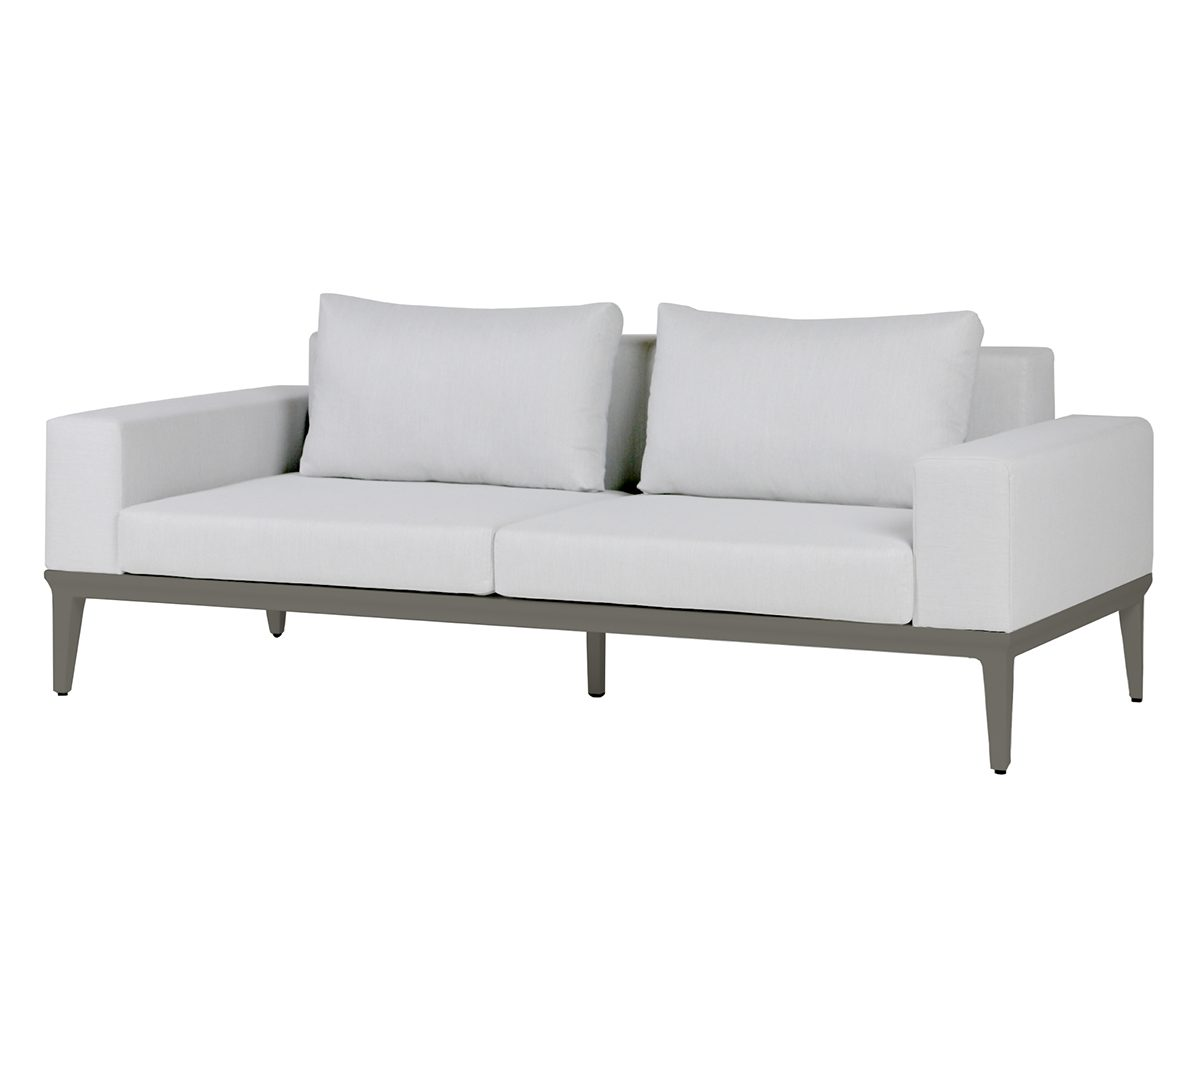 Alassio-2.5-Seater-Sofa